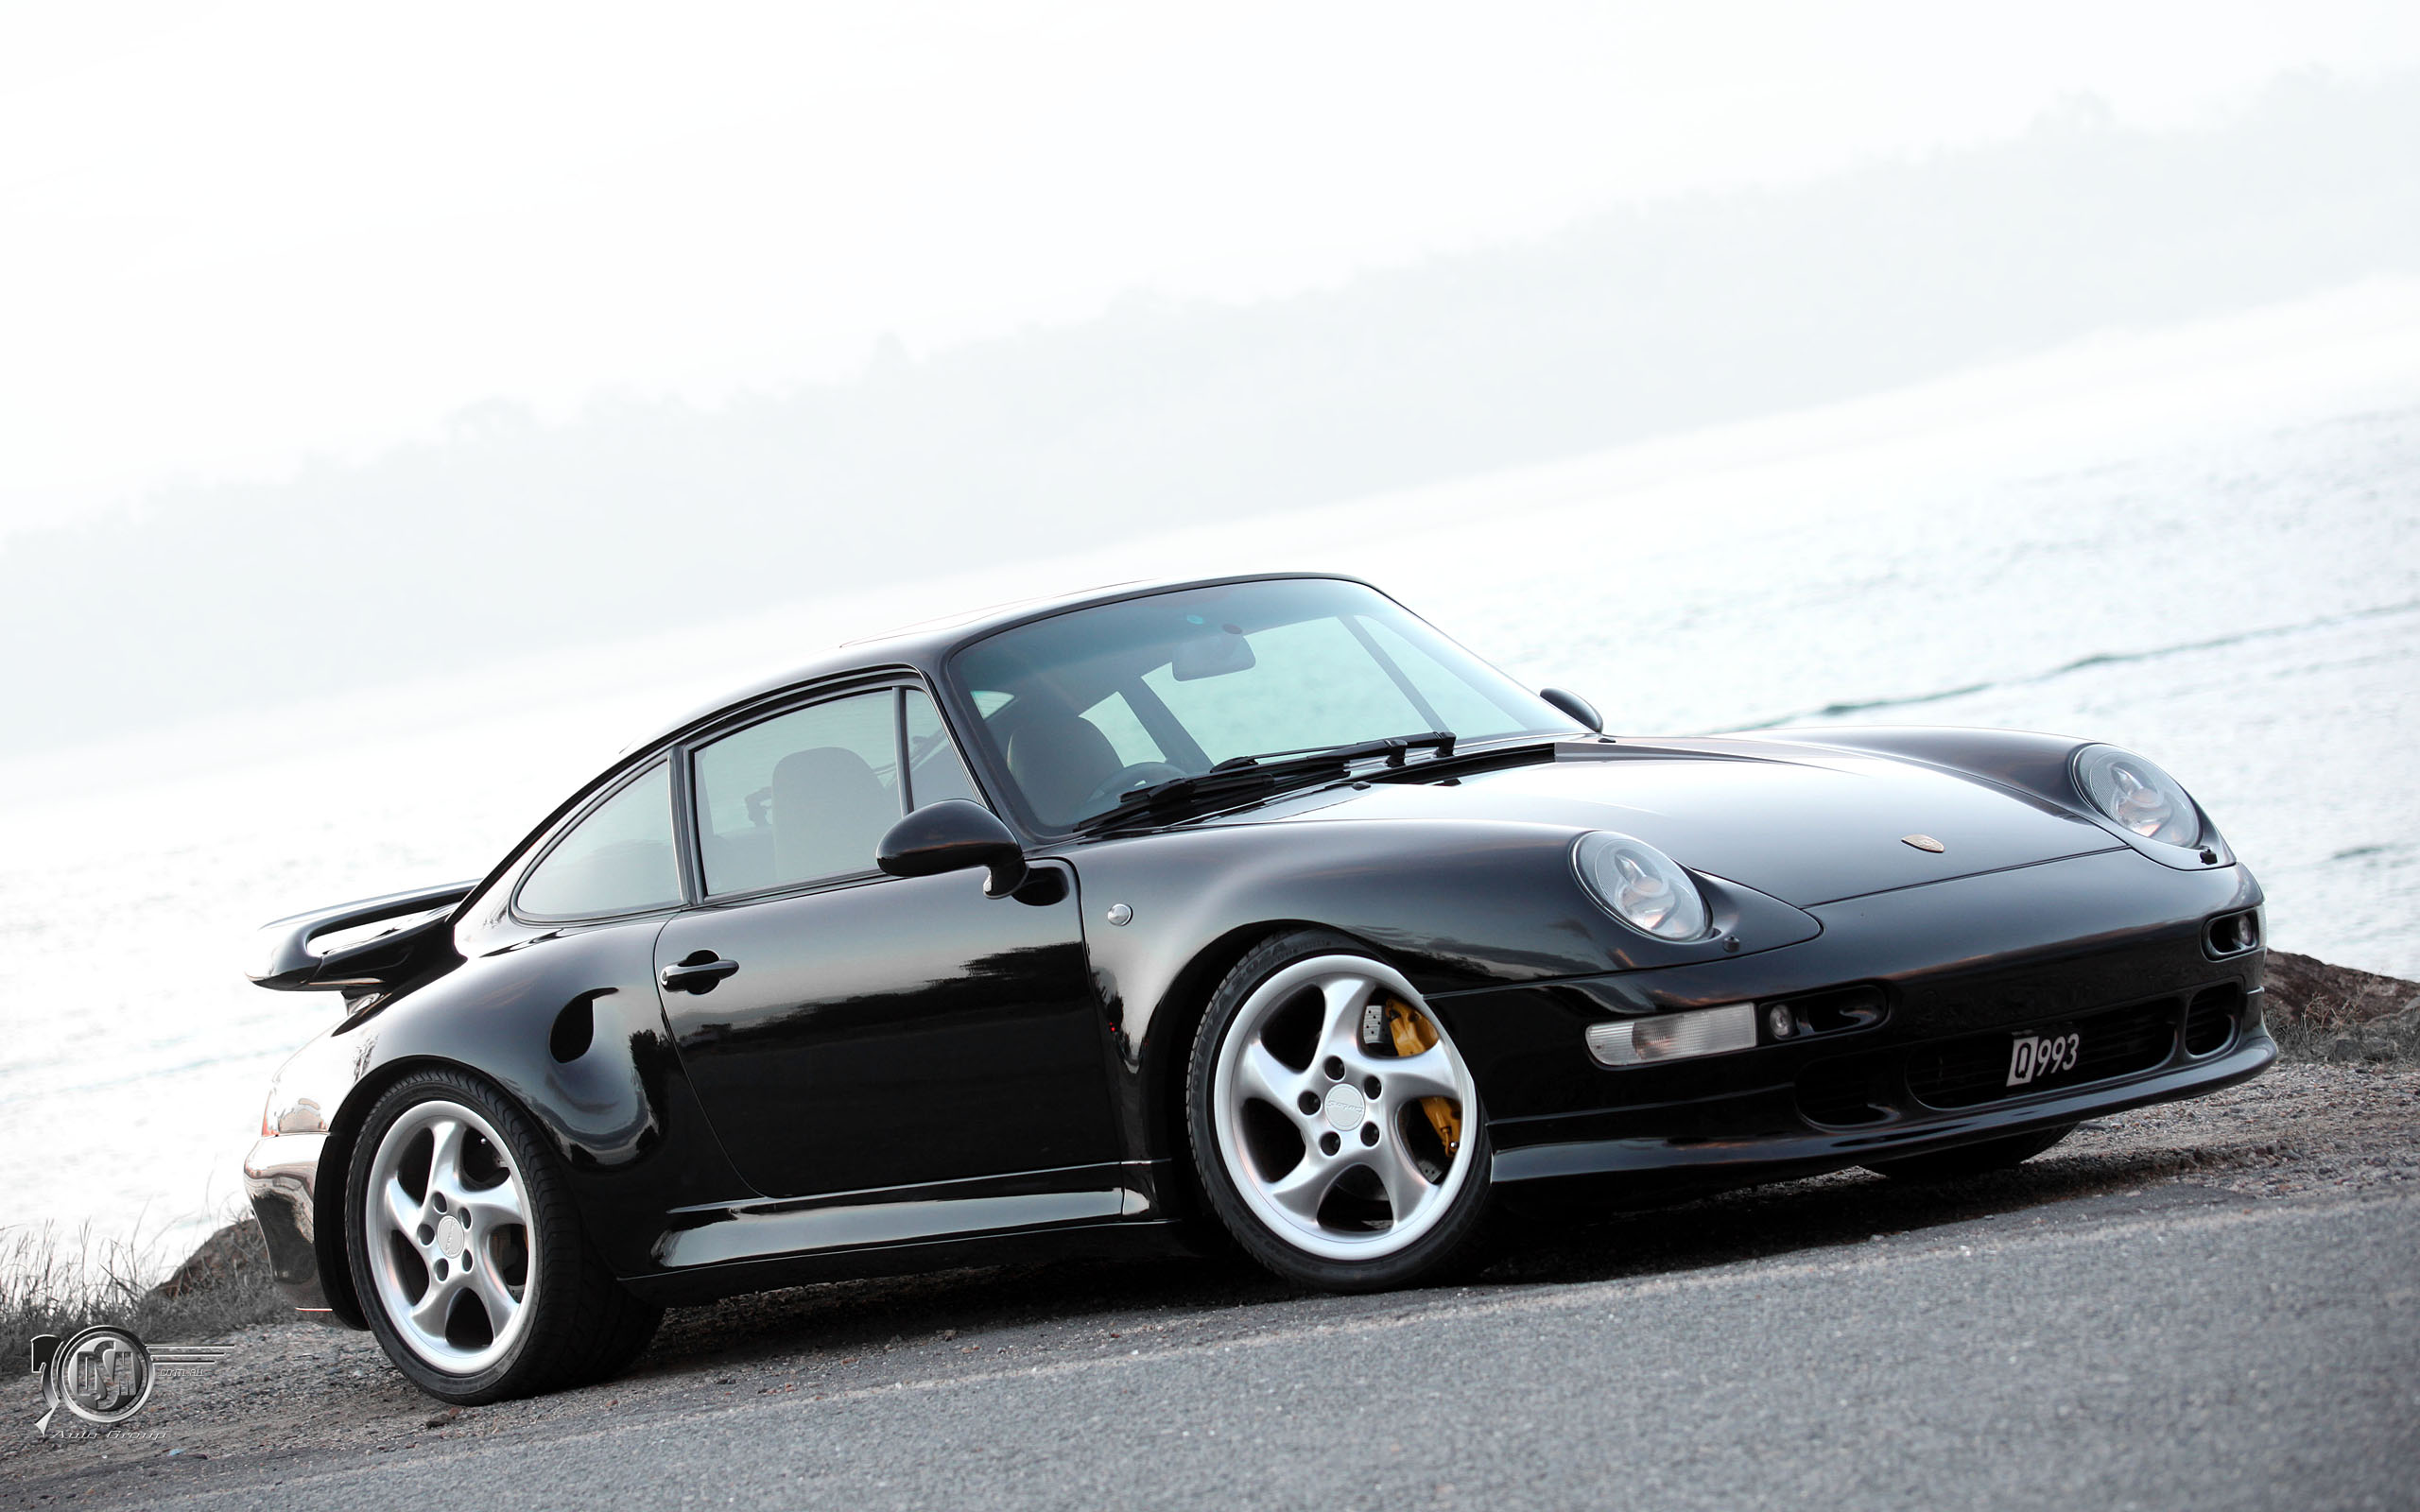 Lease a Black Porsche 911 993 Turbo